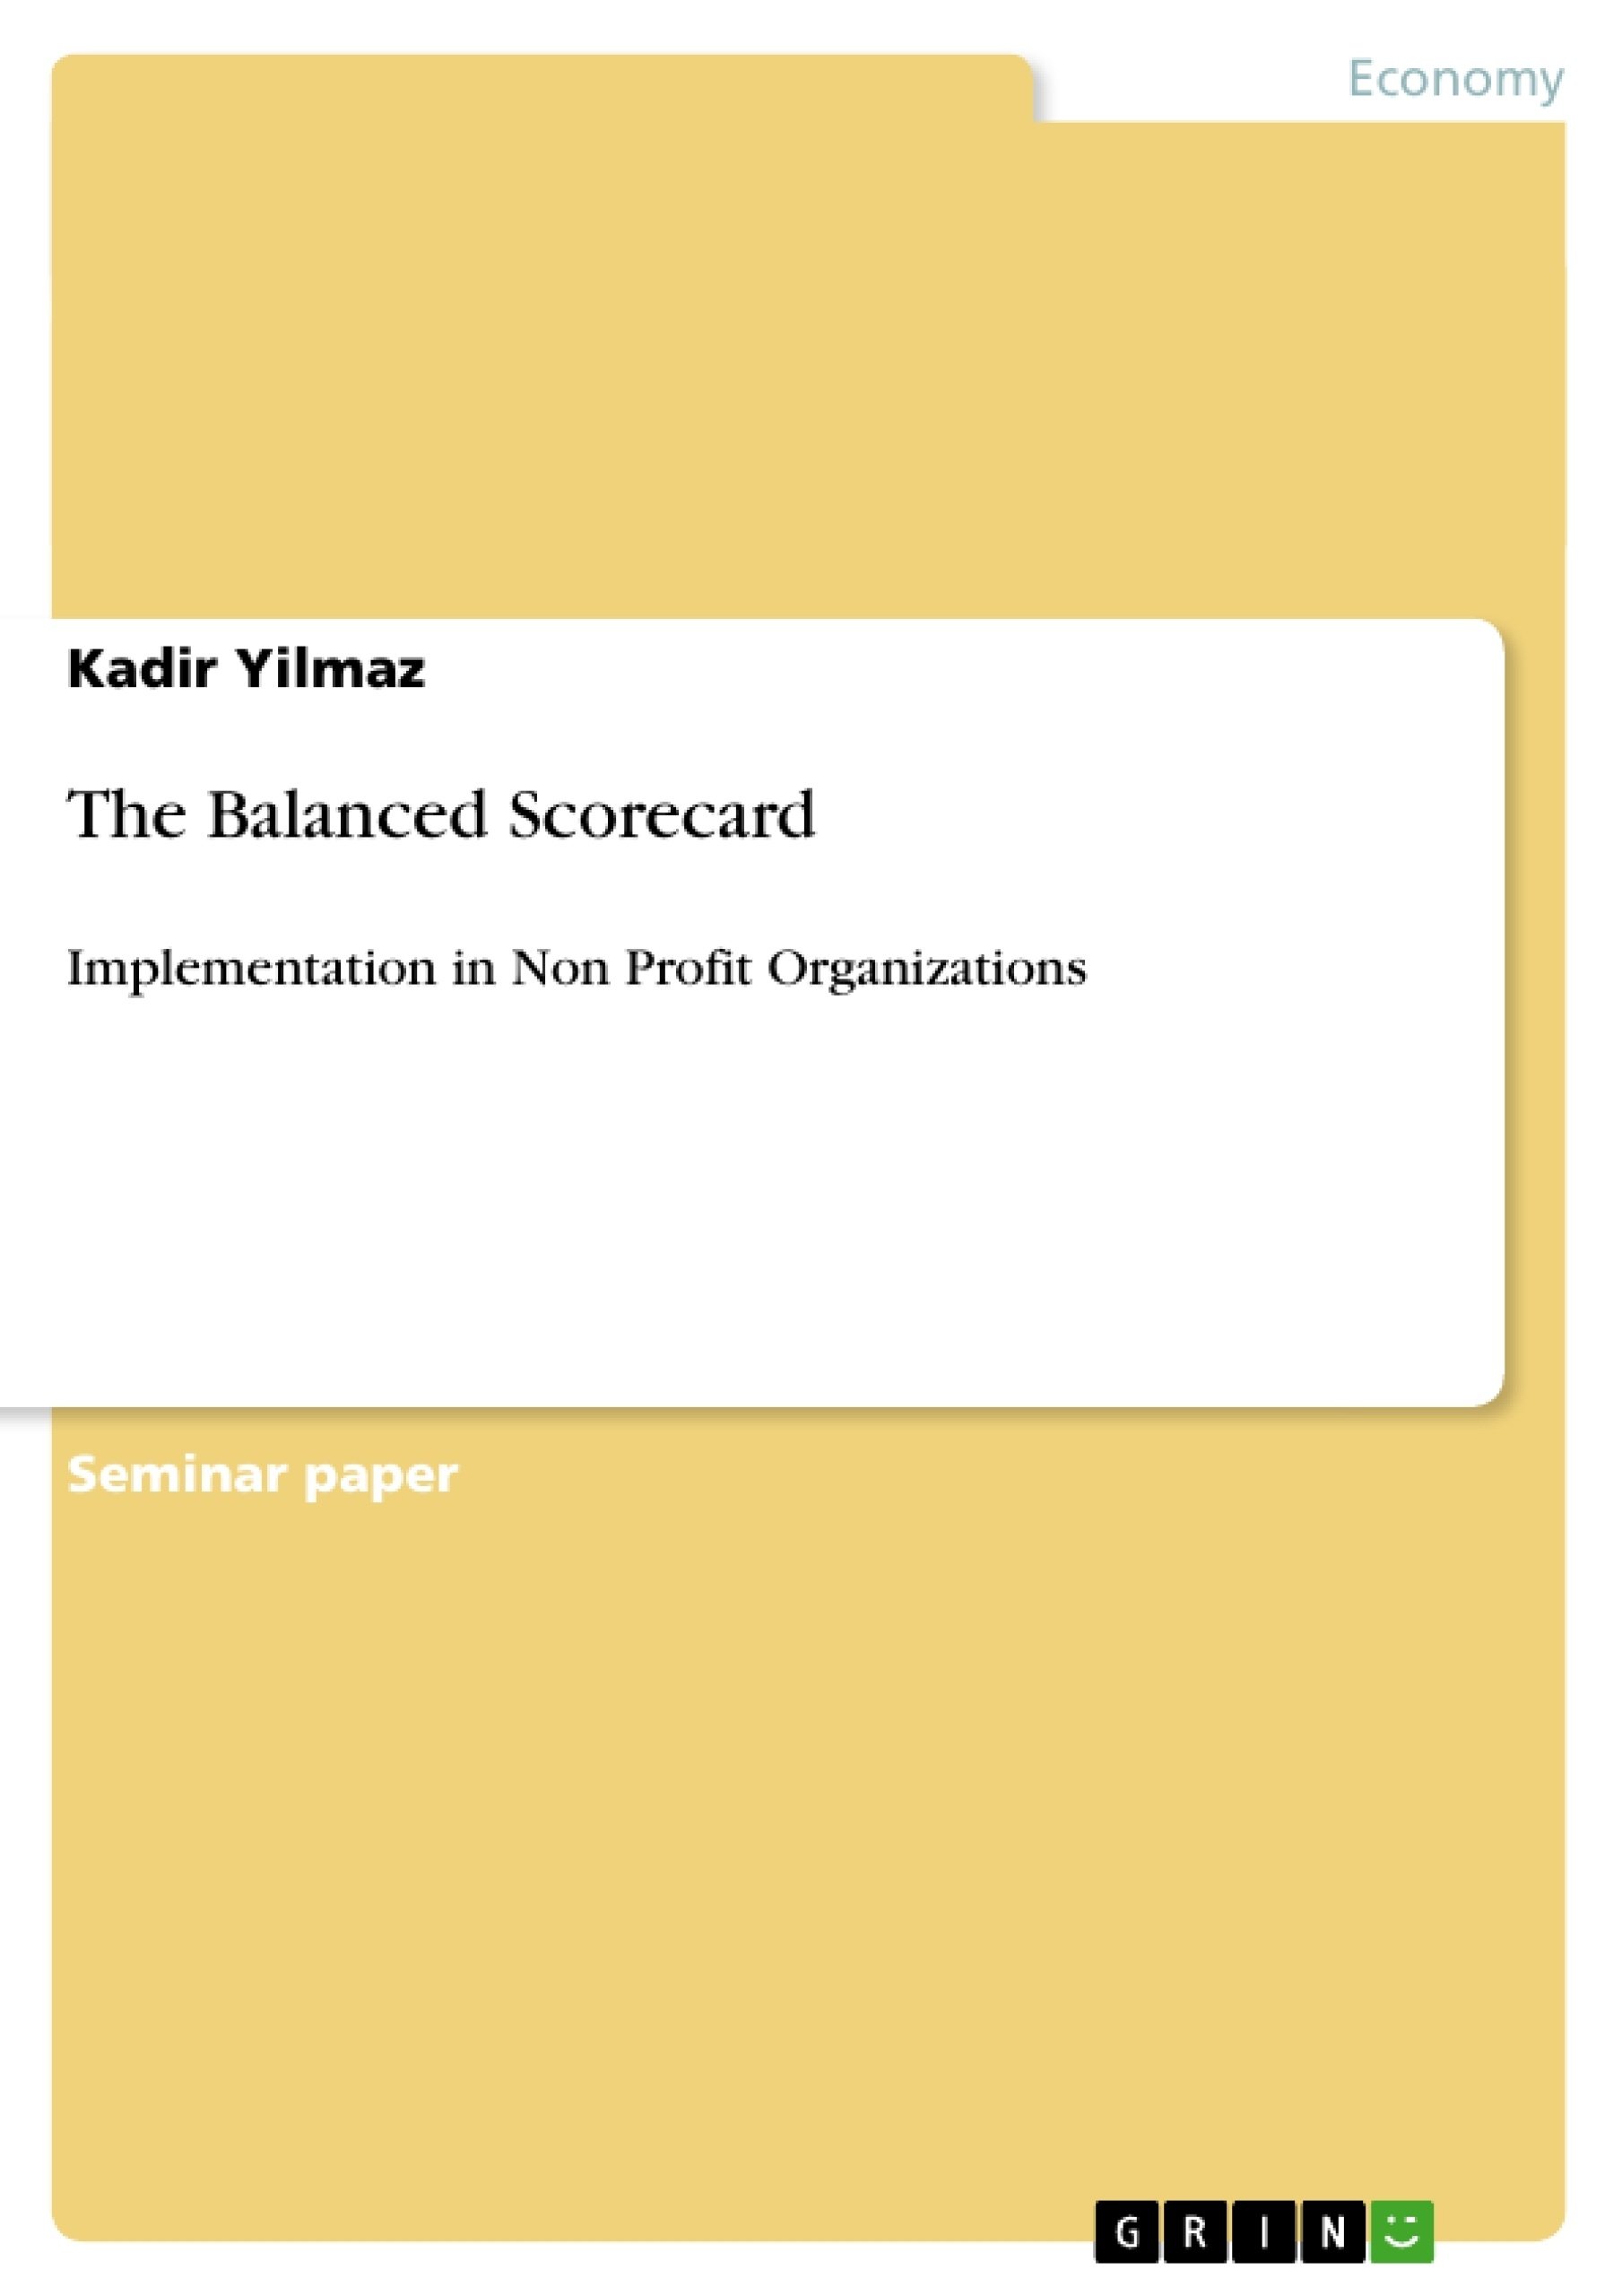 Thesis balanced scorecard management